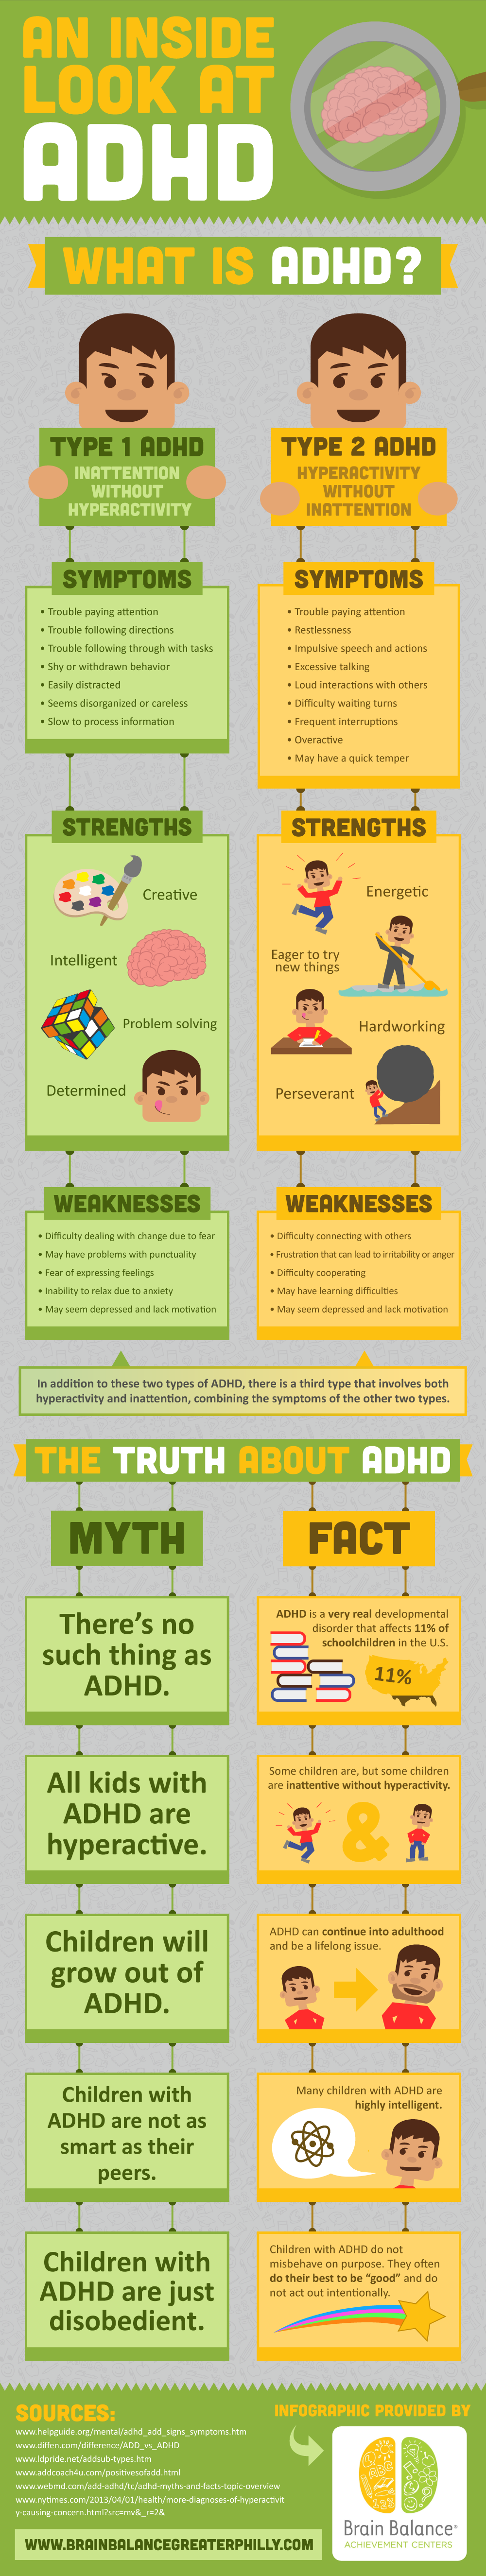 an inside look at adhd my children charts and dr who children type 2 adhd often exhibit a number of strengths including an eagerness to